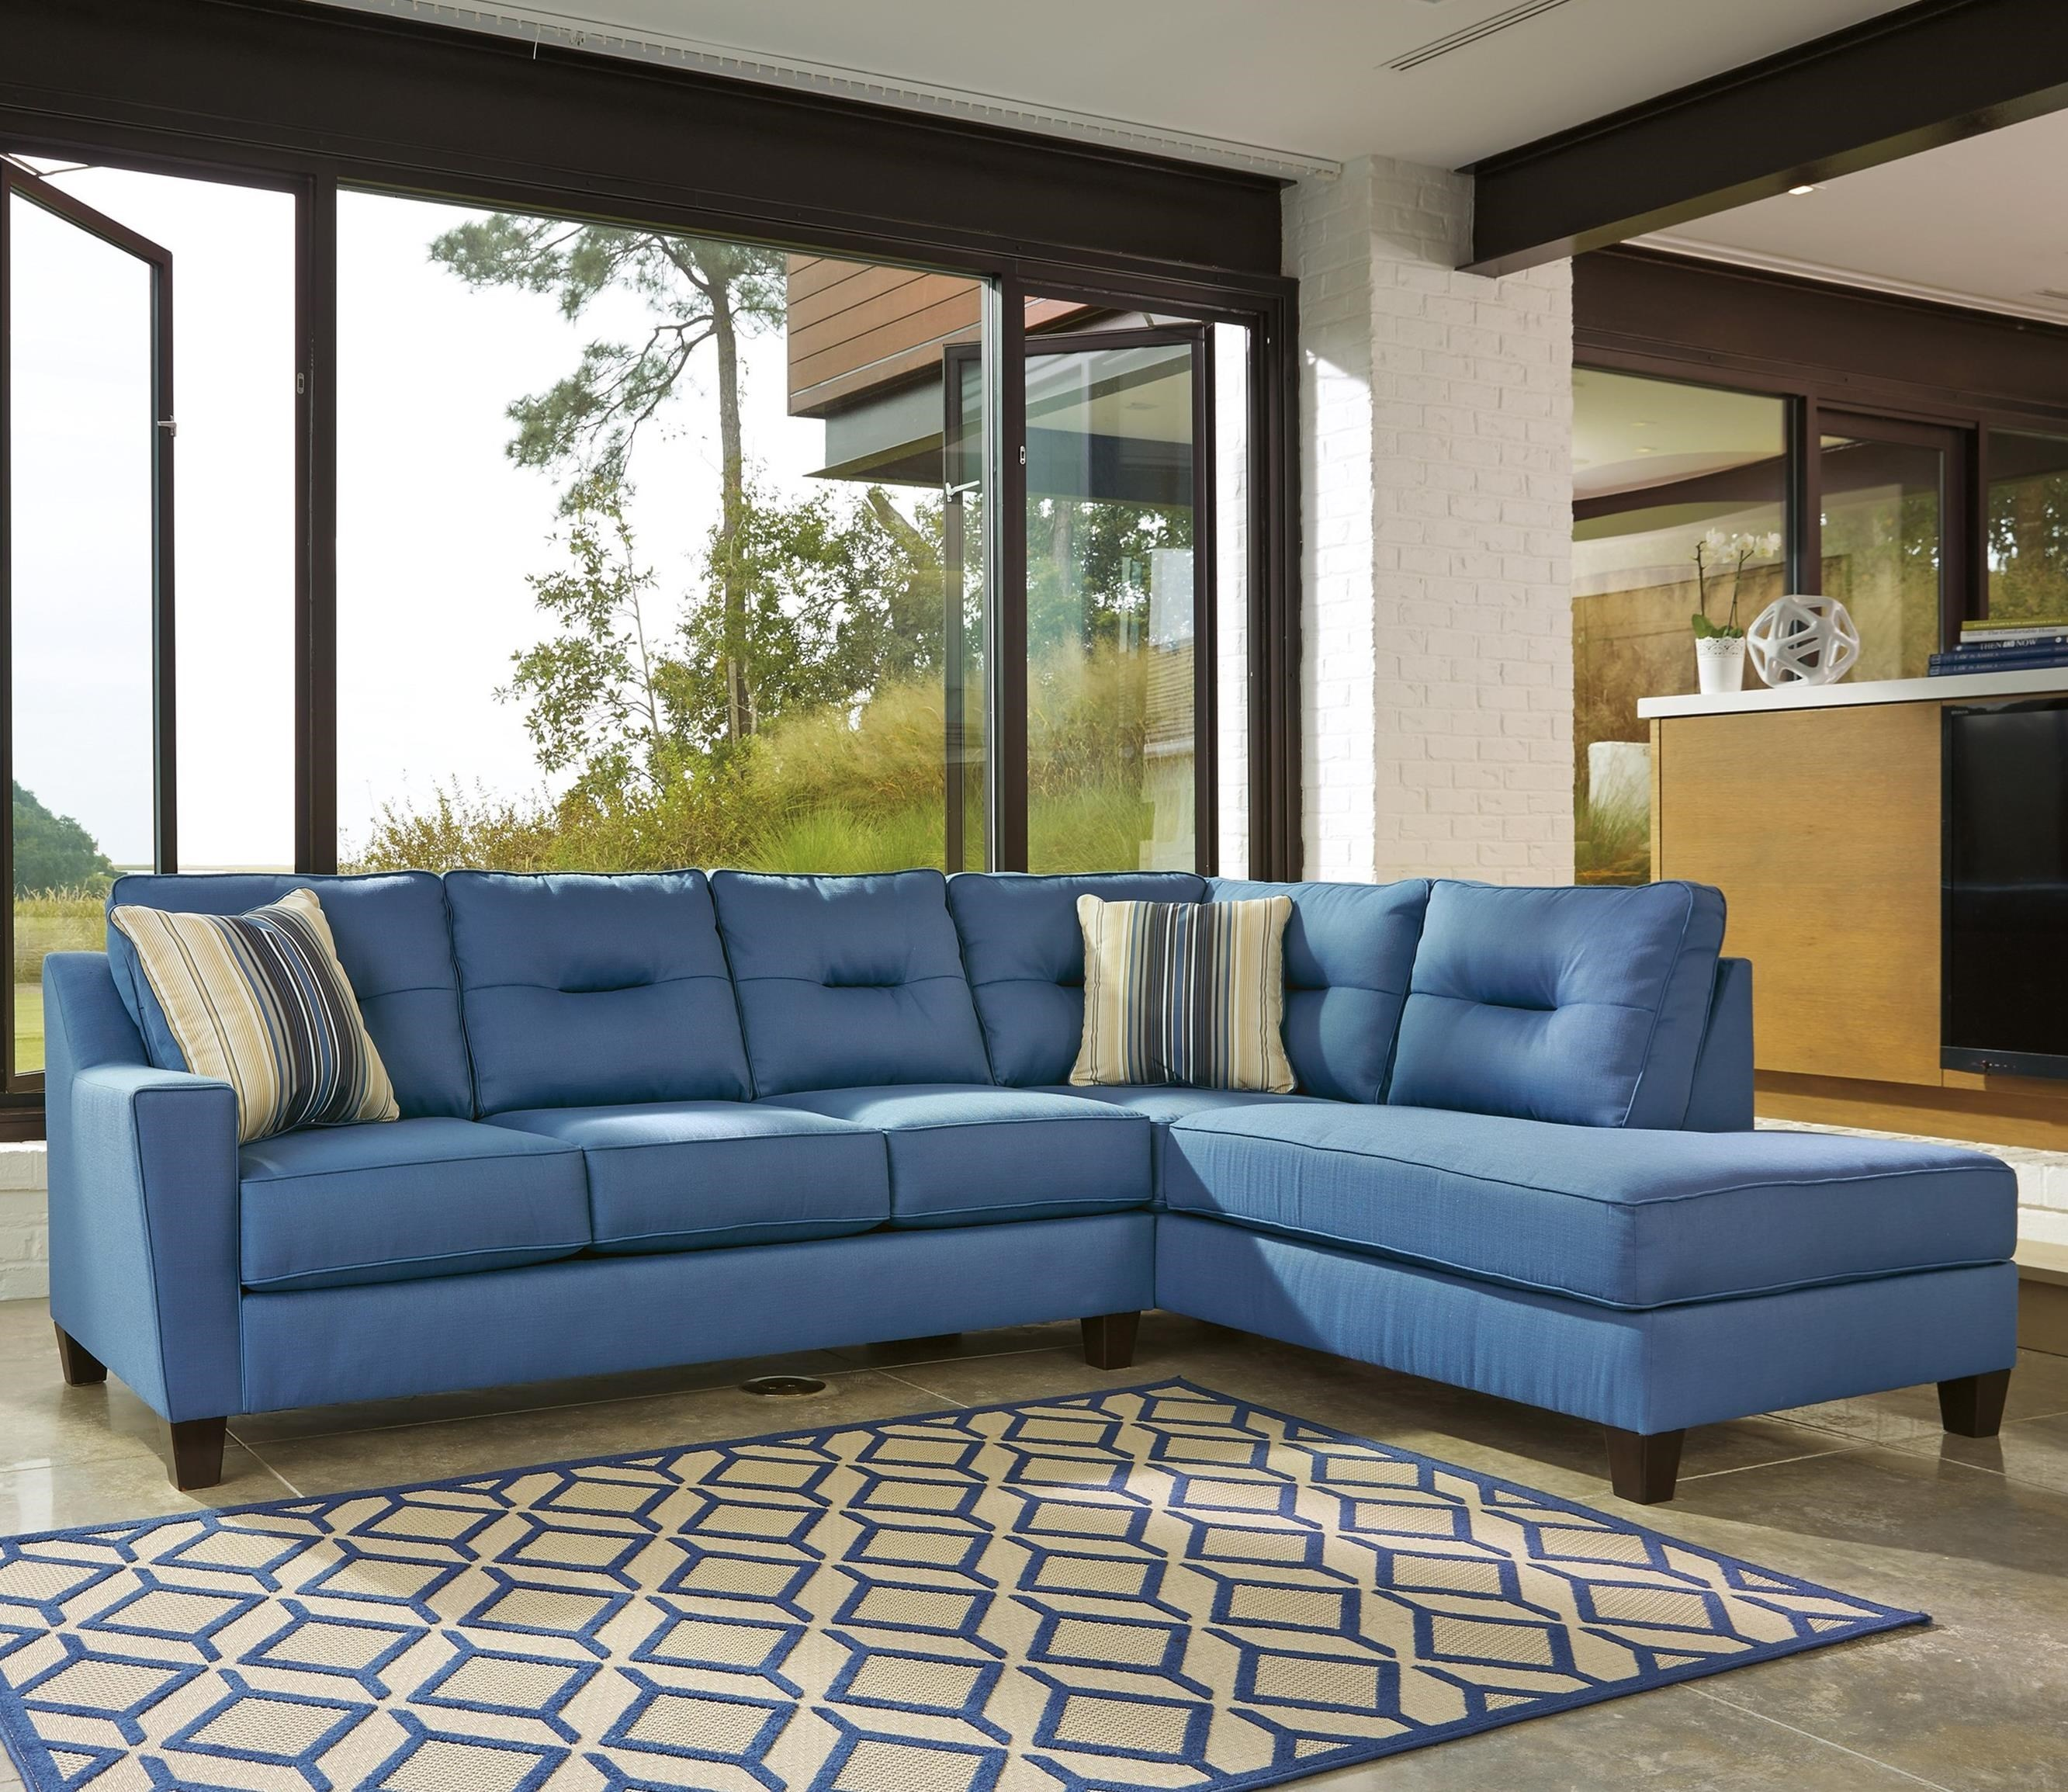 Benchcraft Kirwin Nuvella Sectional with Right Chaise in Performance Fabric : blue sectional sofa with chaise - Sectionals, Sofas & Couches